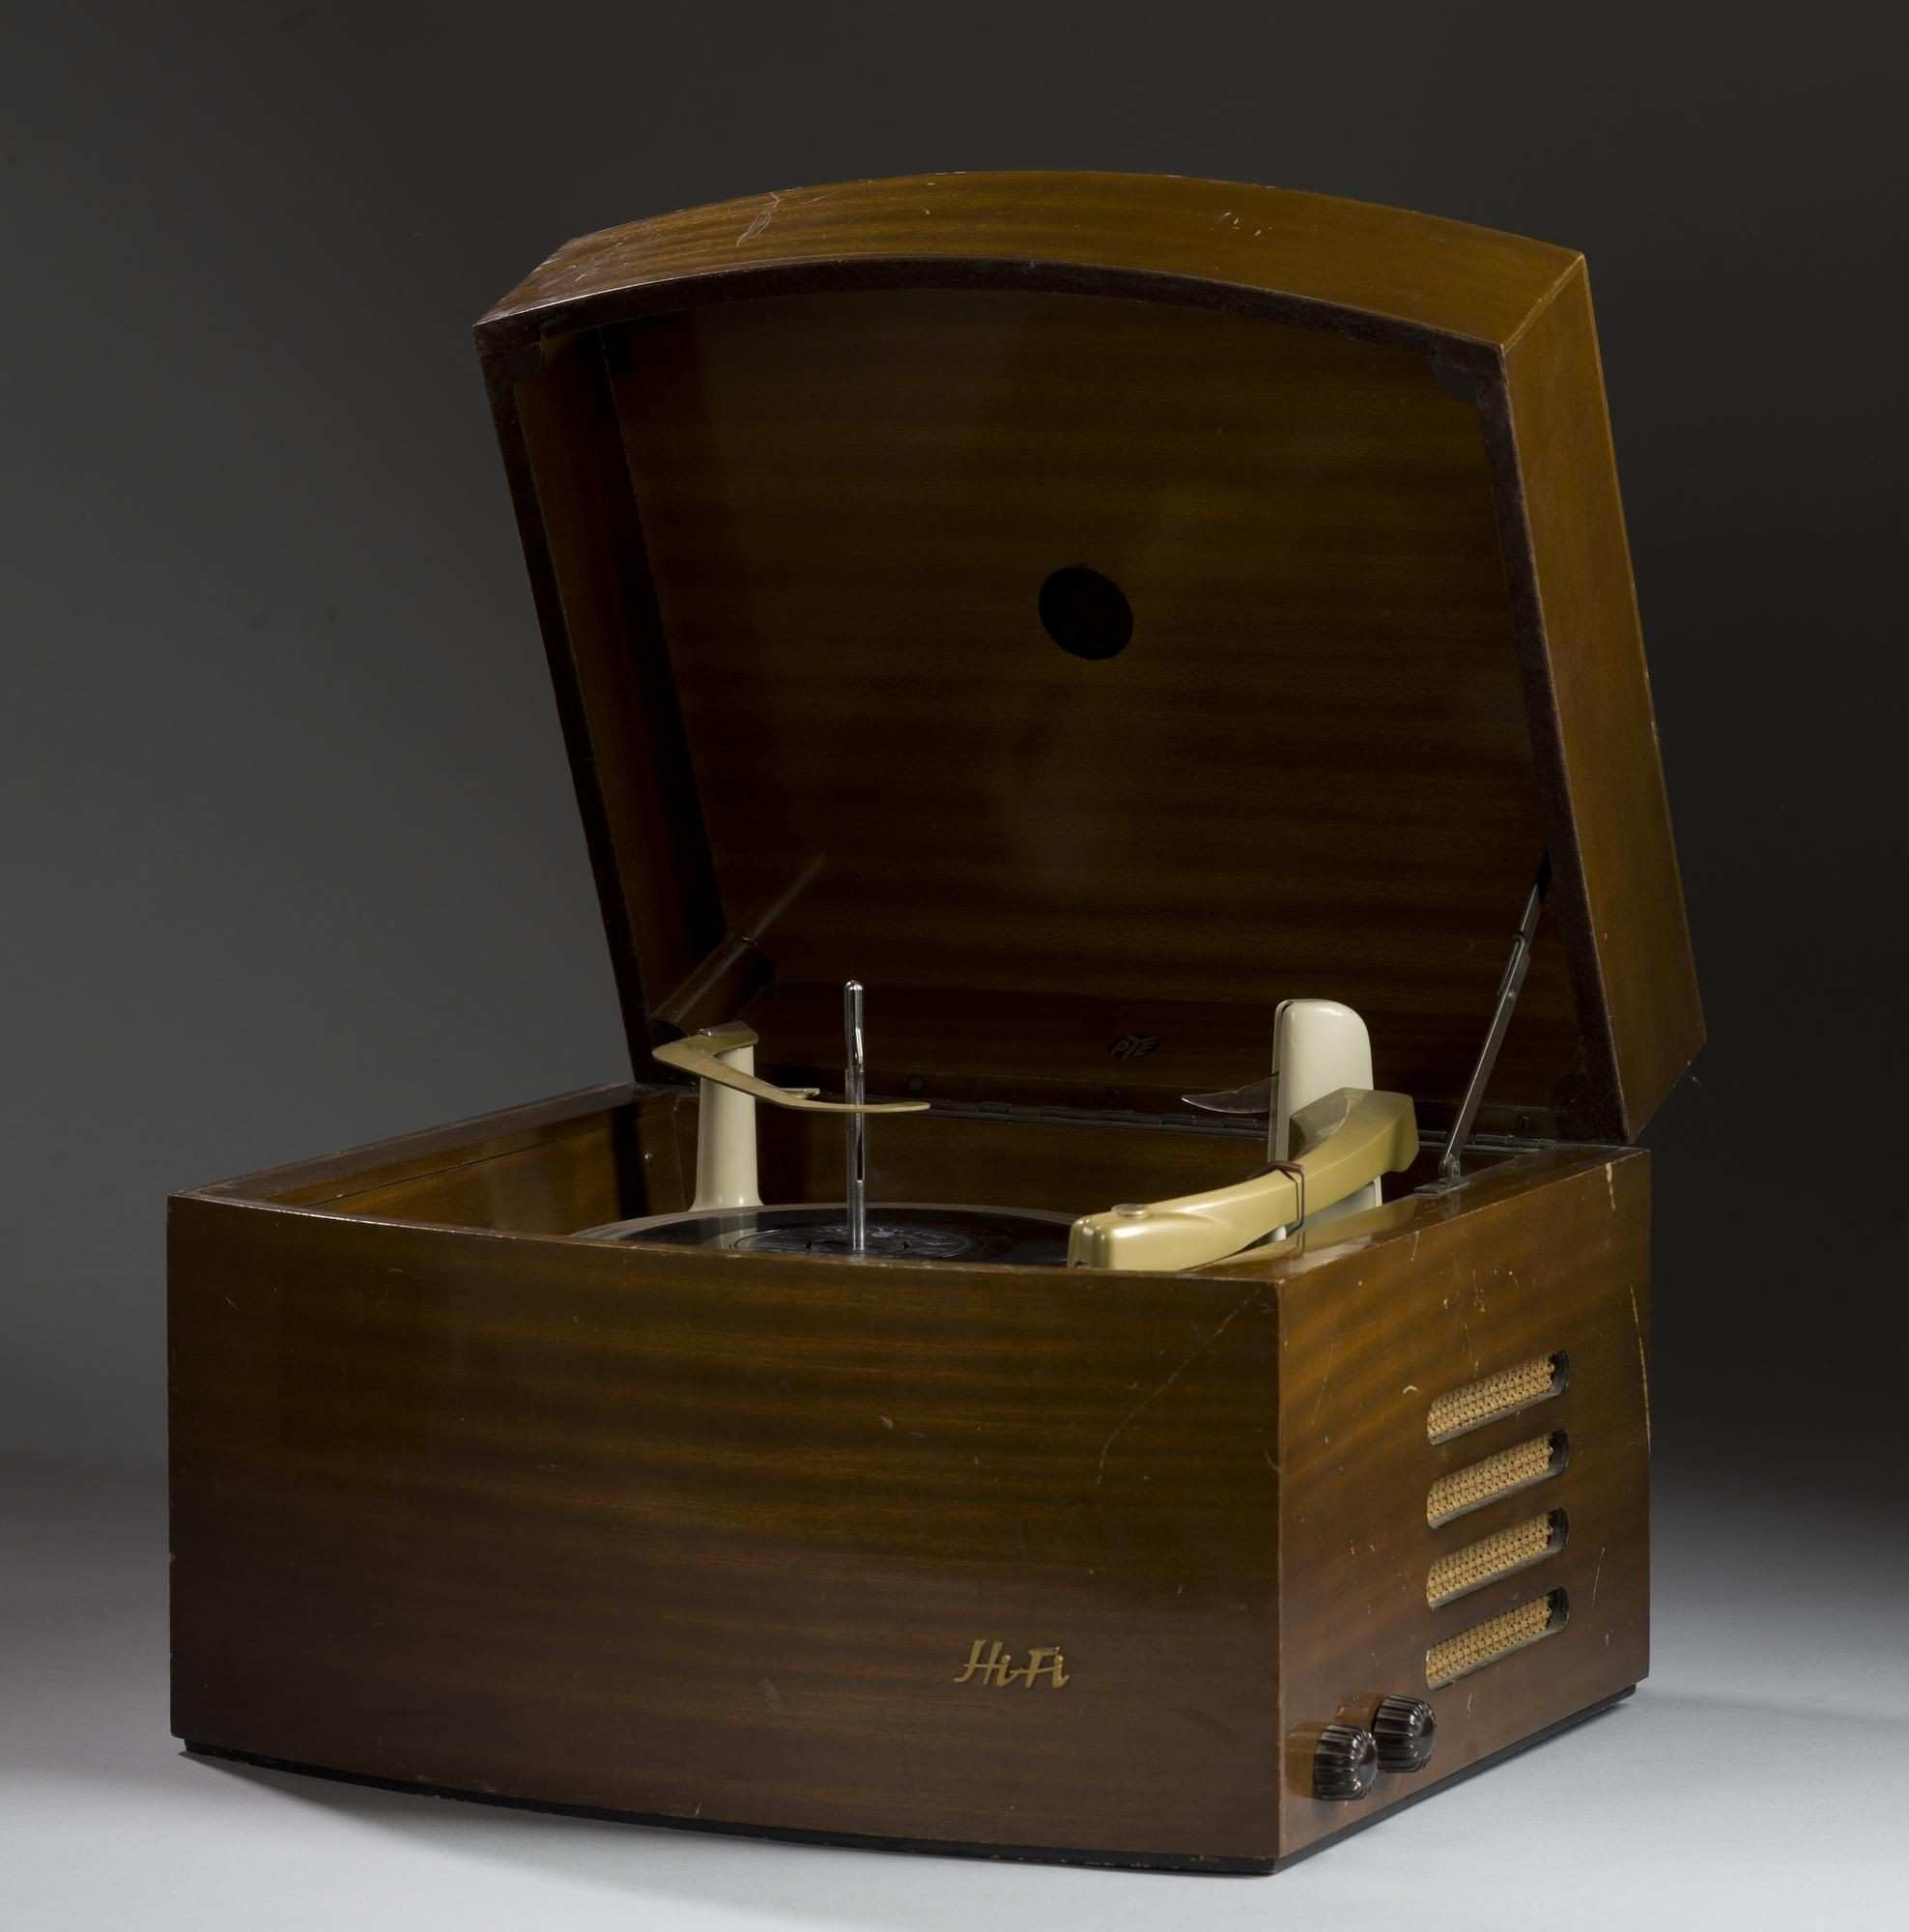 Mains operated record player in a polished wooden cabinet made by